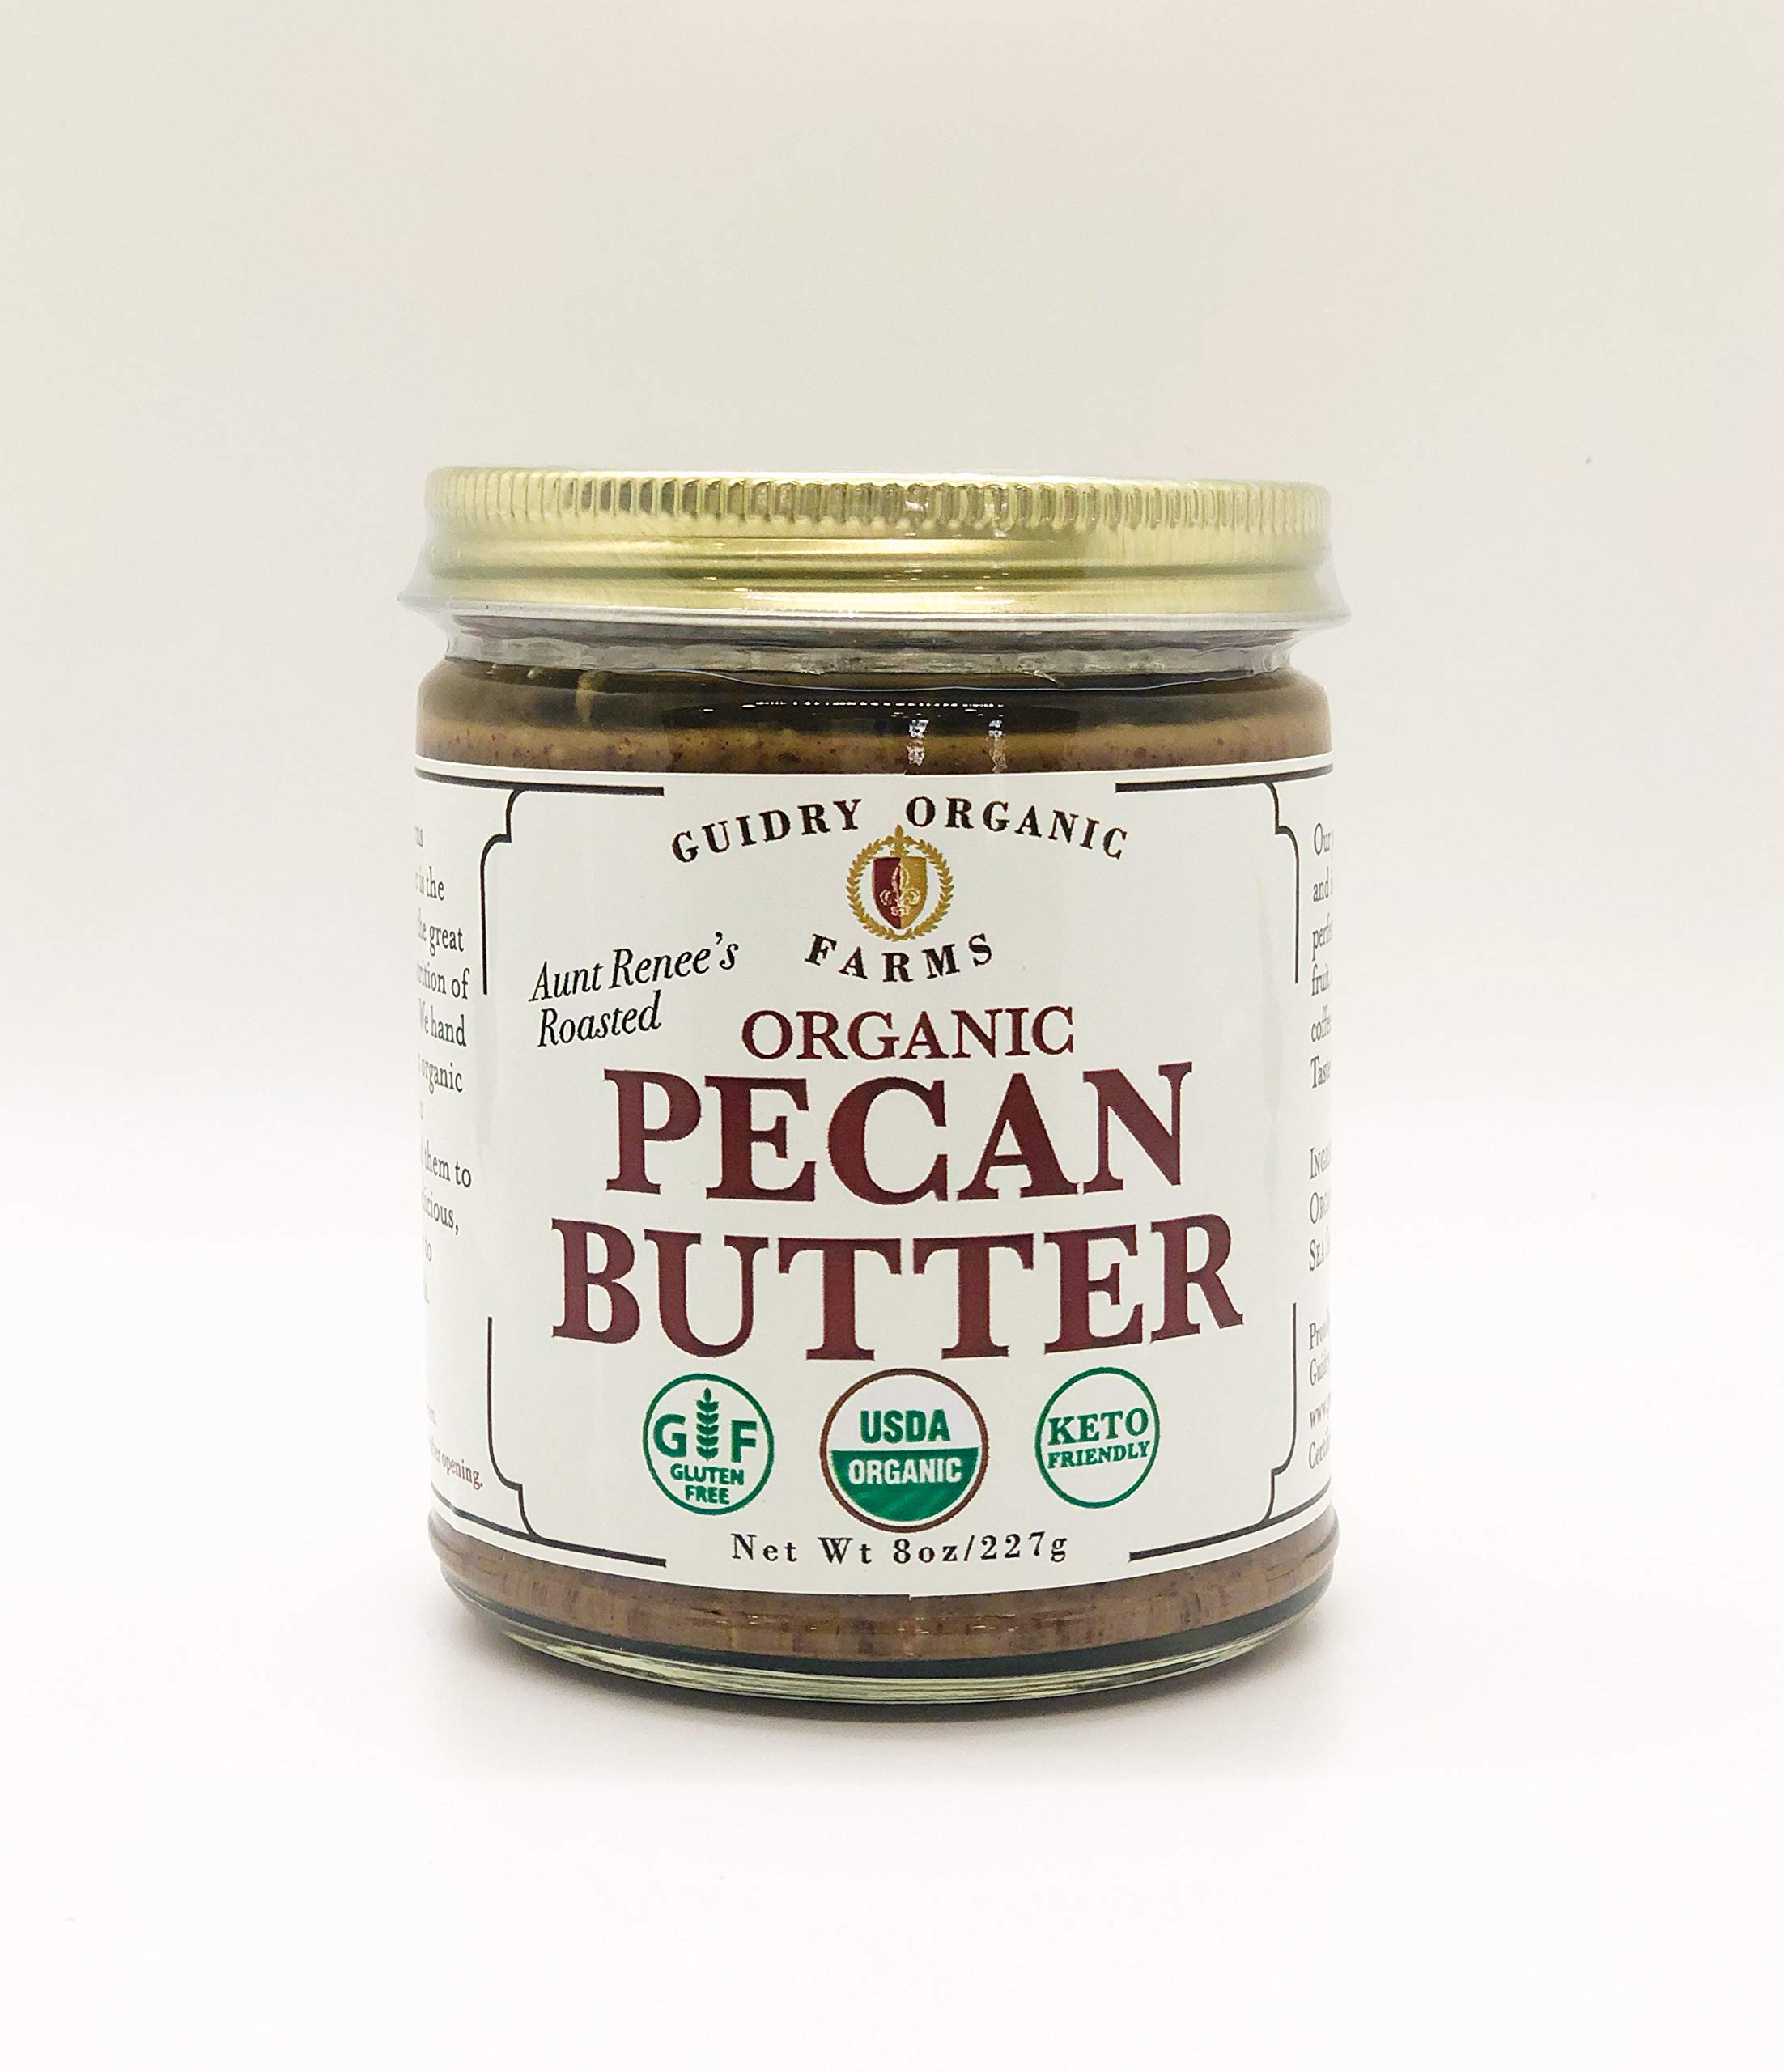 USDA Certified Organic Pecan Butter, Handmade, Small batches, Keto Friendly, Gluten Free, All Natural, made of Organic Pecans, and Sea Salt , no other additives! NO SUGAR ADDED by Guidry Organic Farms